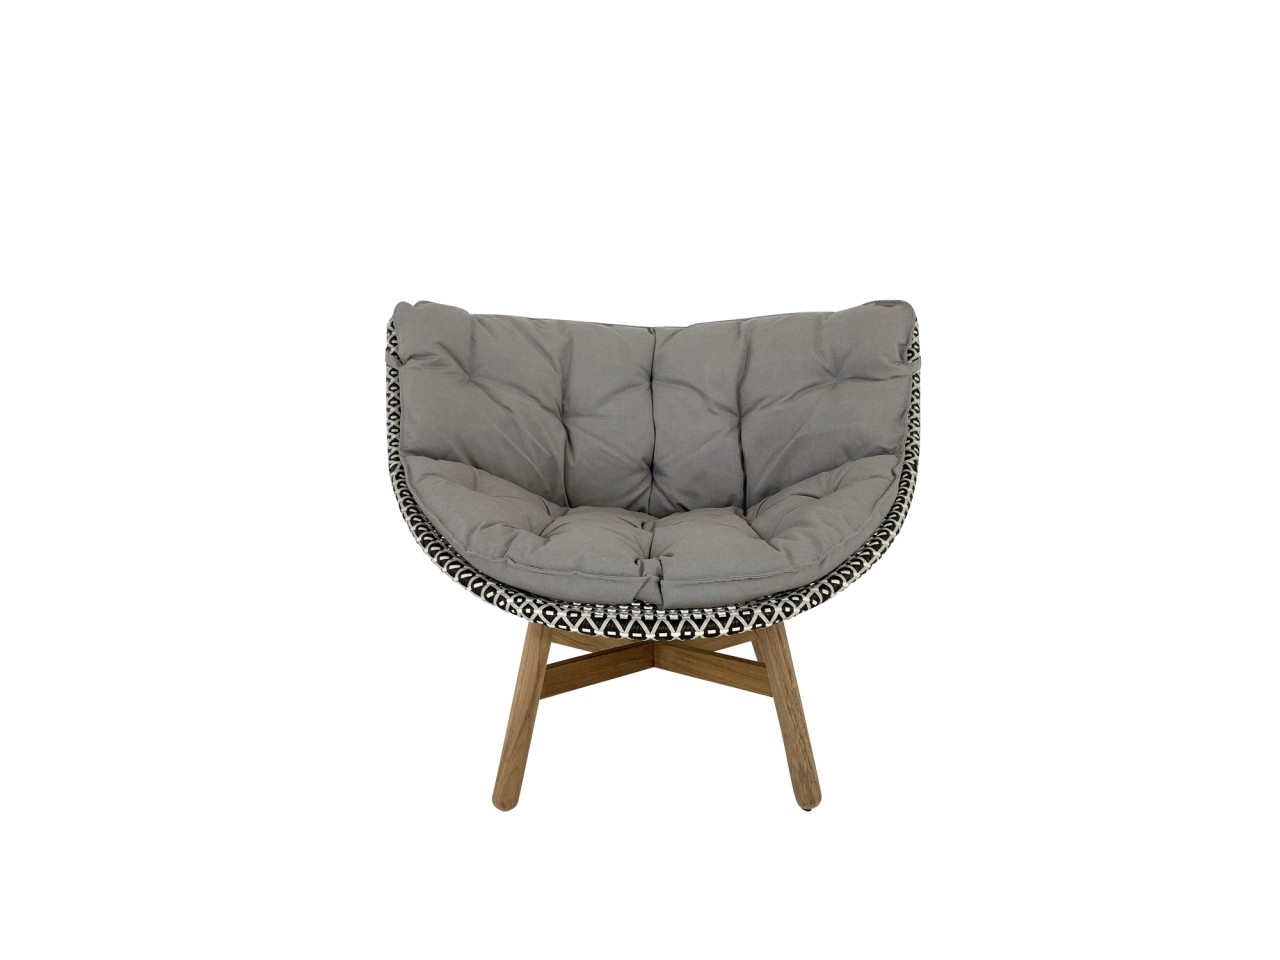 DEDON MBRACE LOUNGE CHAIR Sessel in pepper mit Polsterauflage in 452 cool taupe